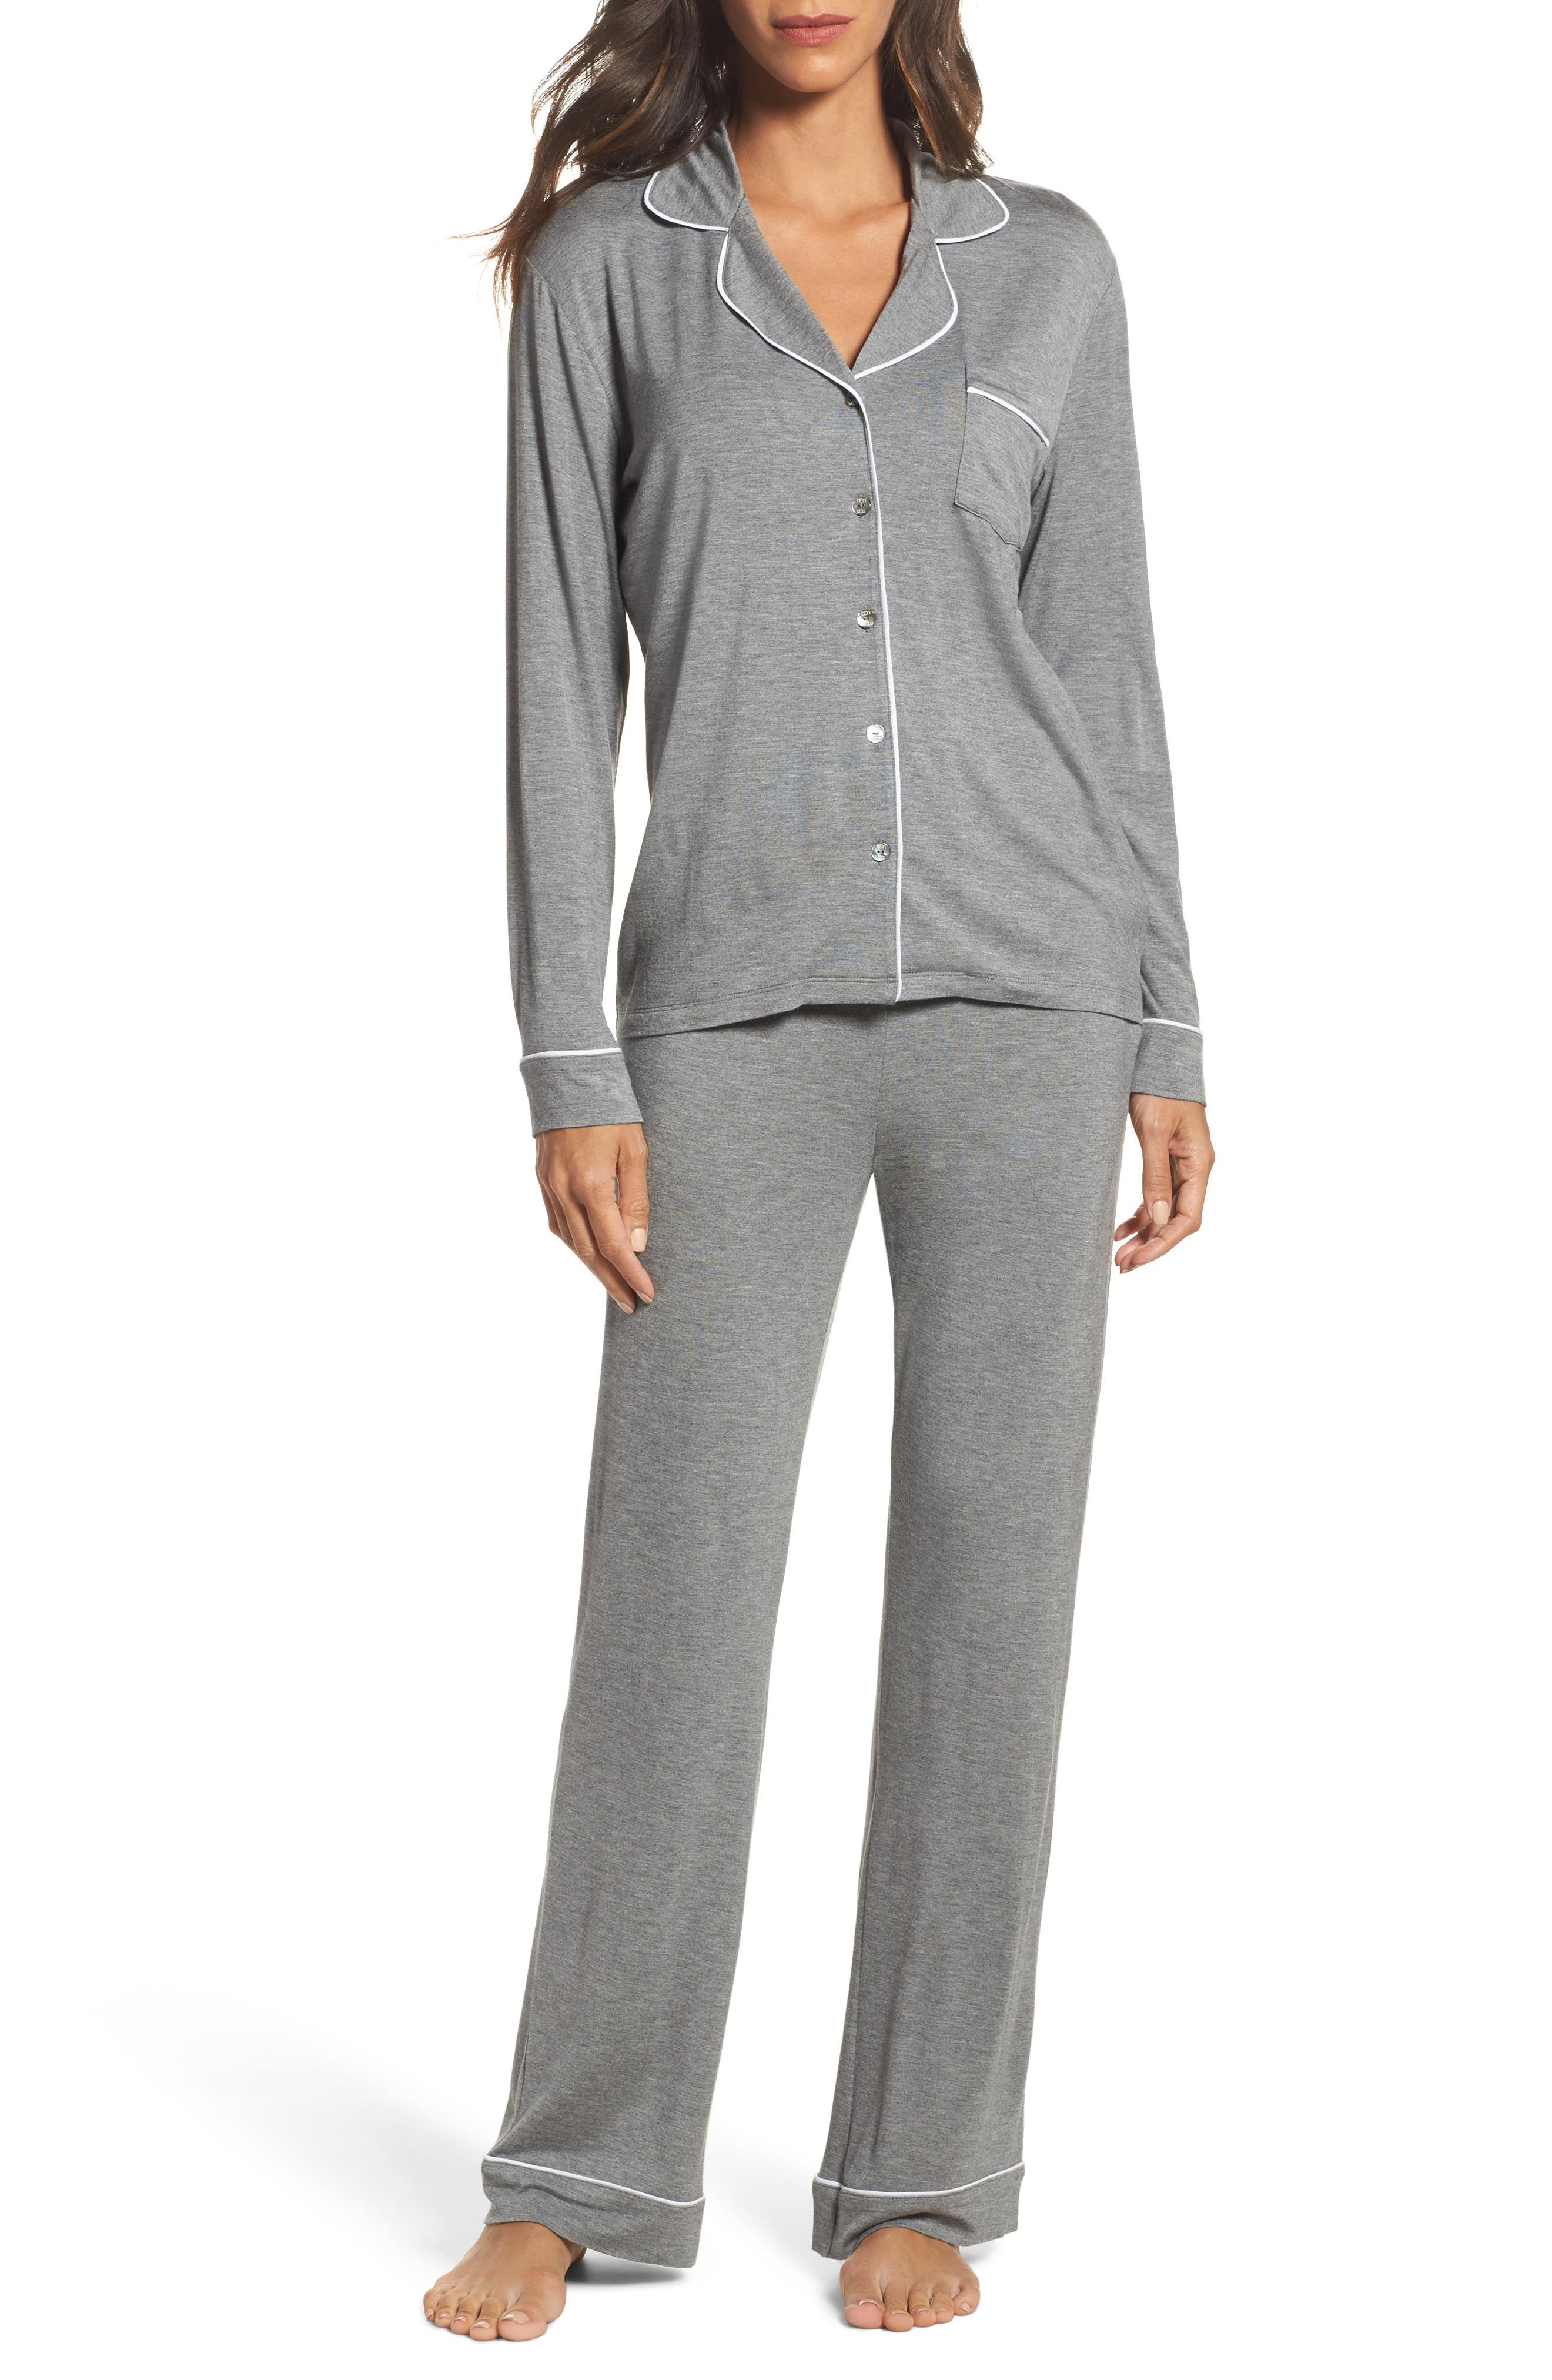 Lenon Jersey Pajamas,                         Main,                         color, GREY HEATHER